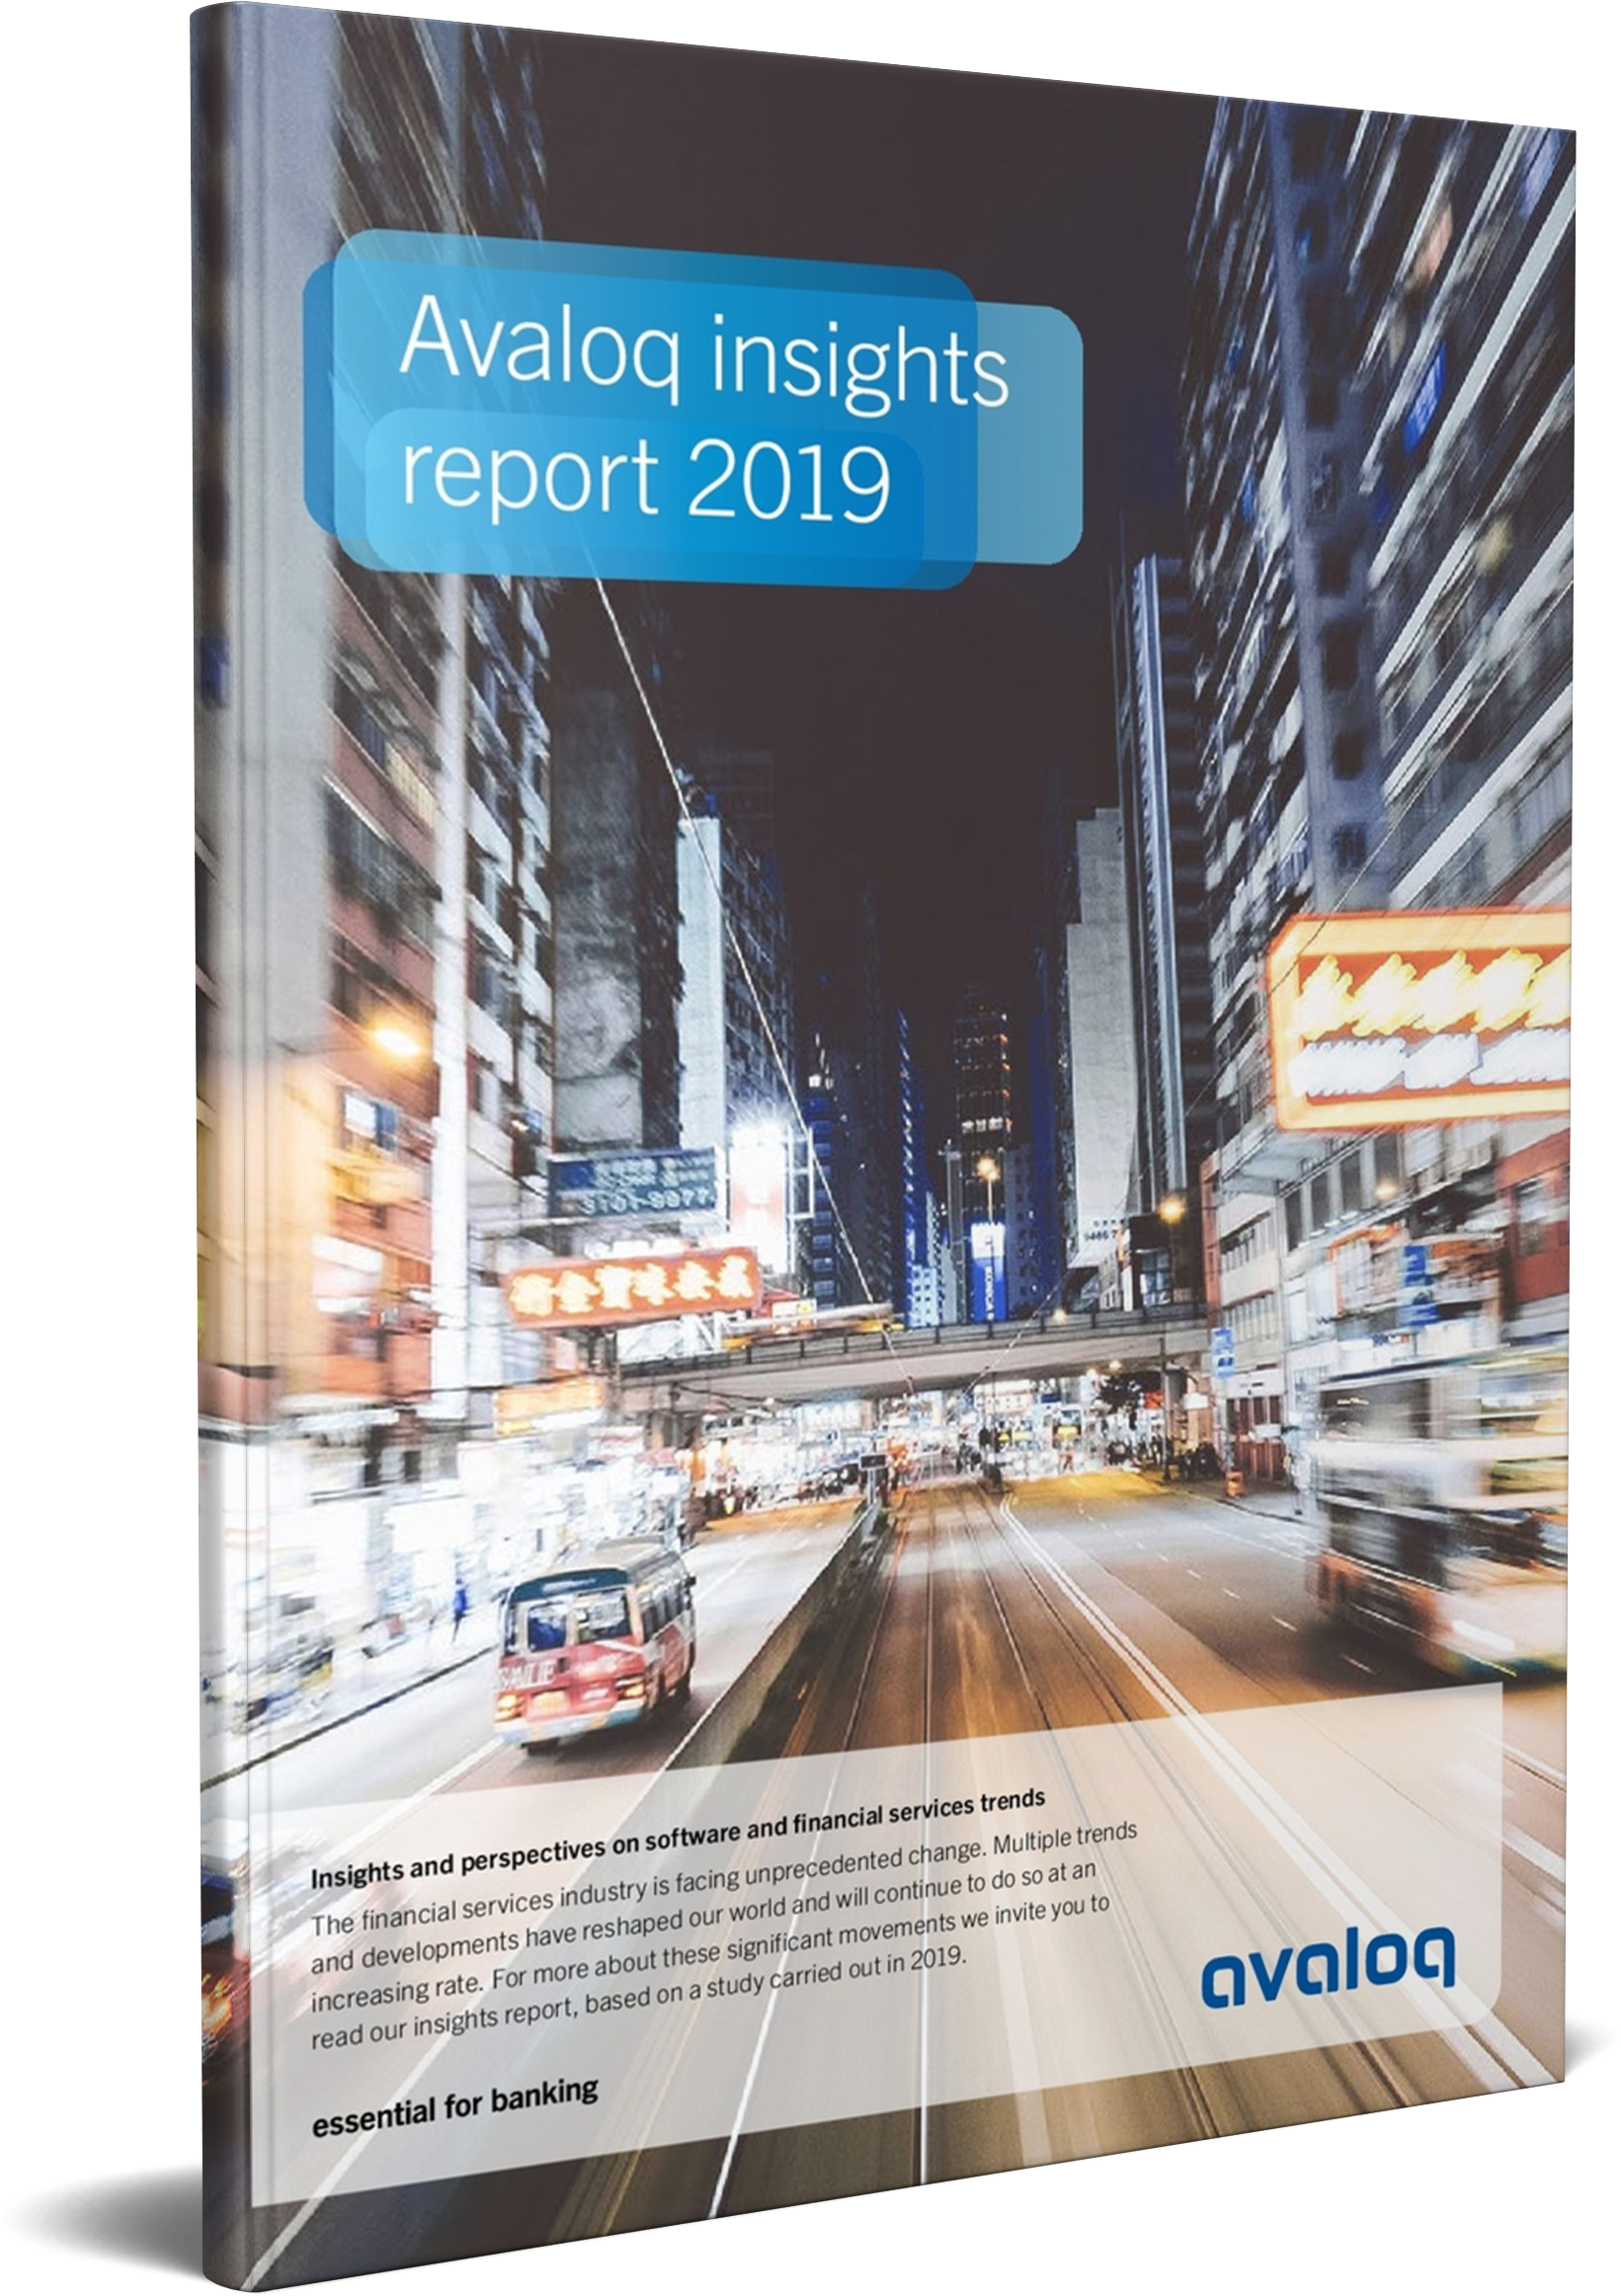 Avaloq_Insights report_3D cover